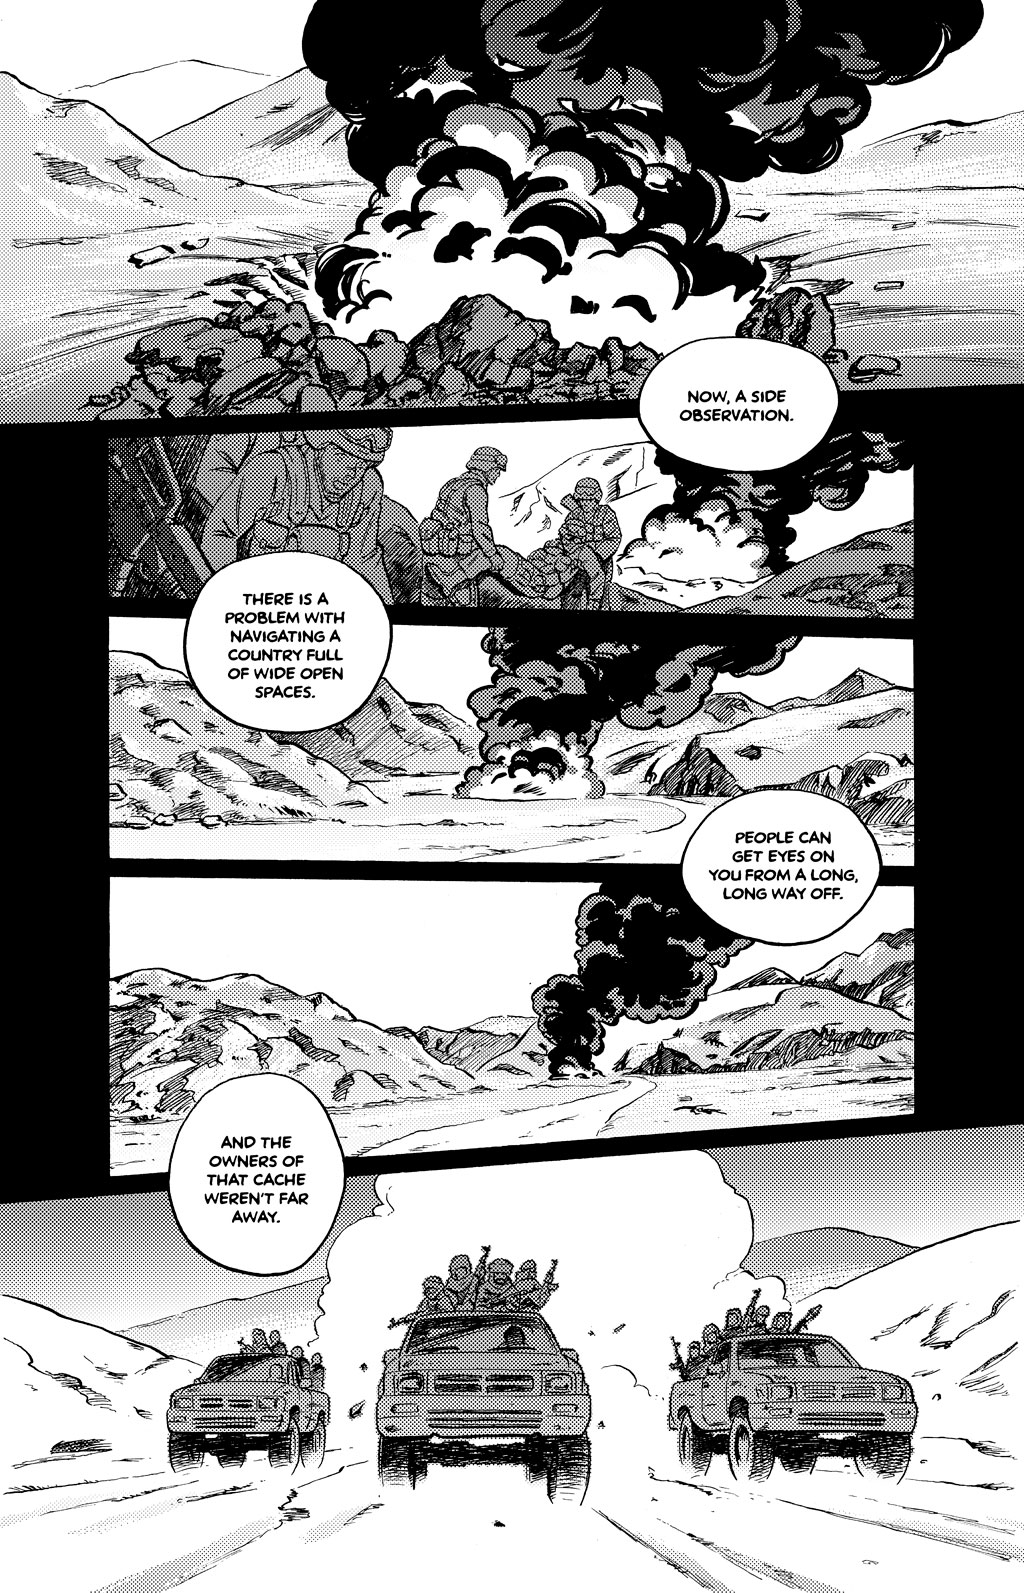 ps4-page113